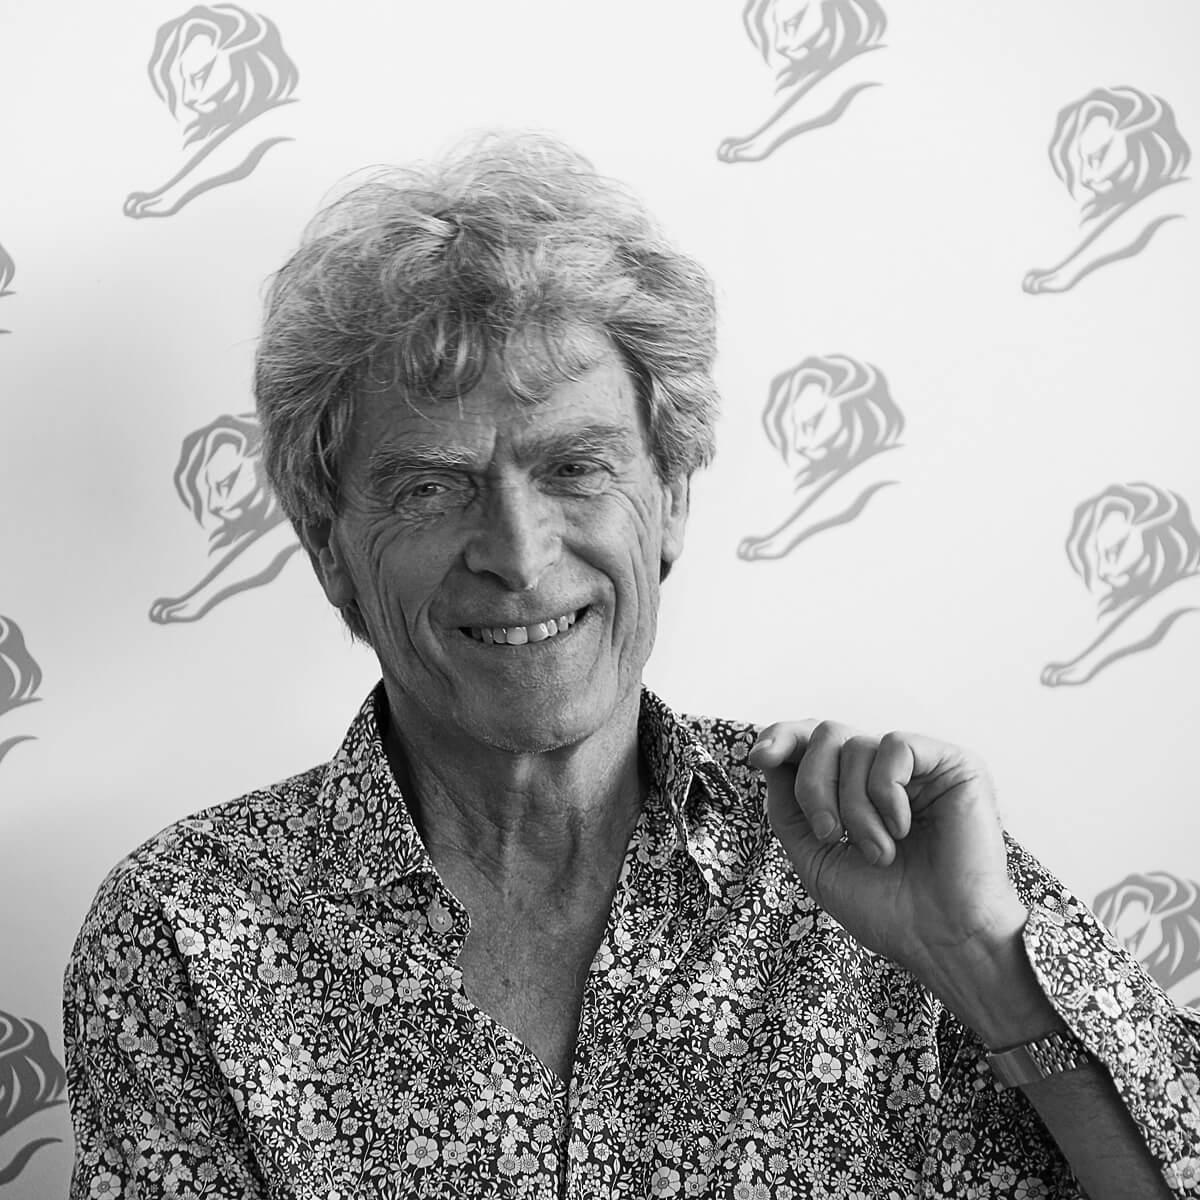 Portrait of Sir John Hegarty (BBH Advertising Agency, London) by Julian Hanford at Cannes Lions 2017